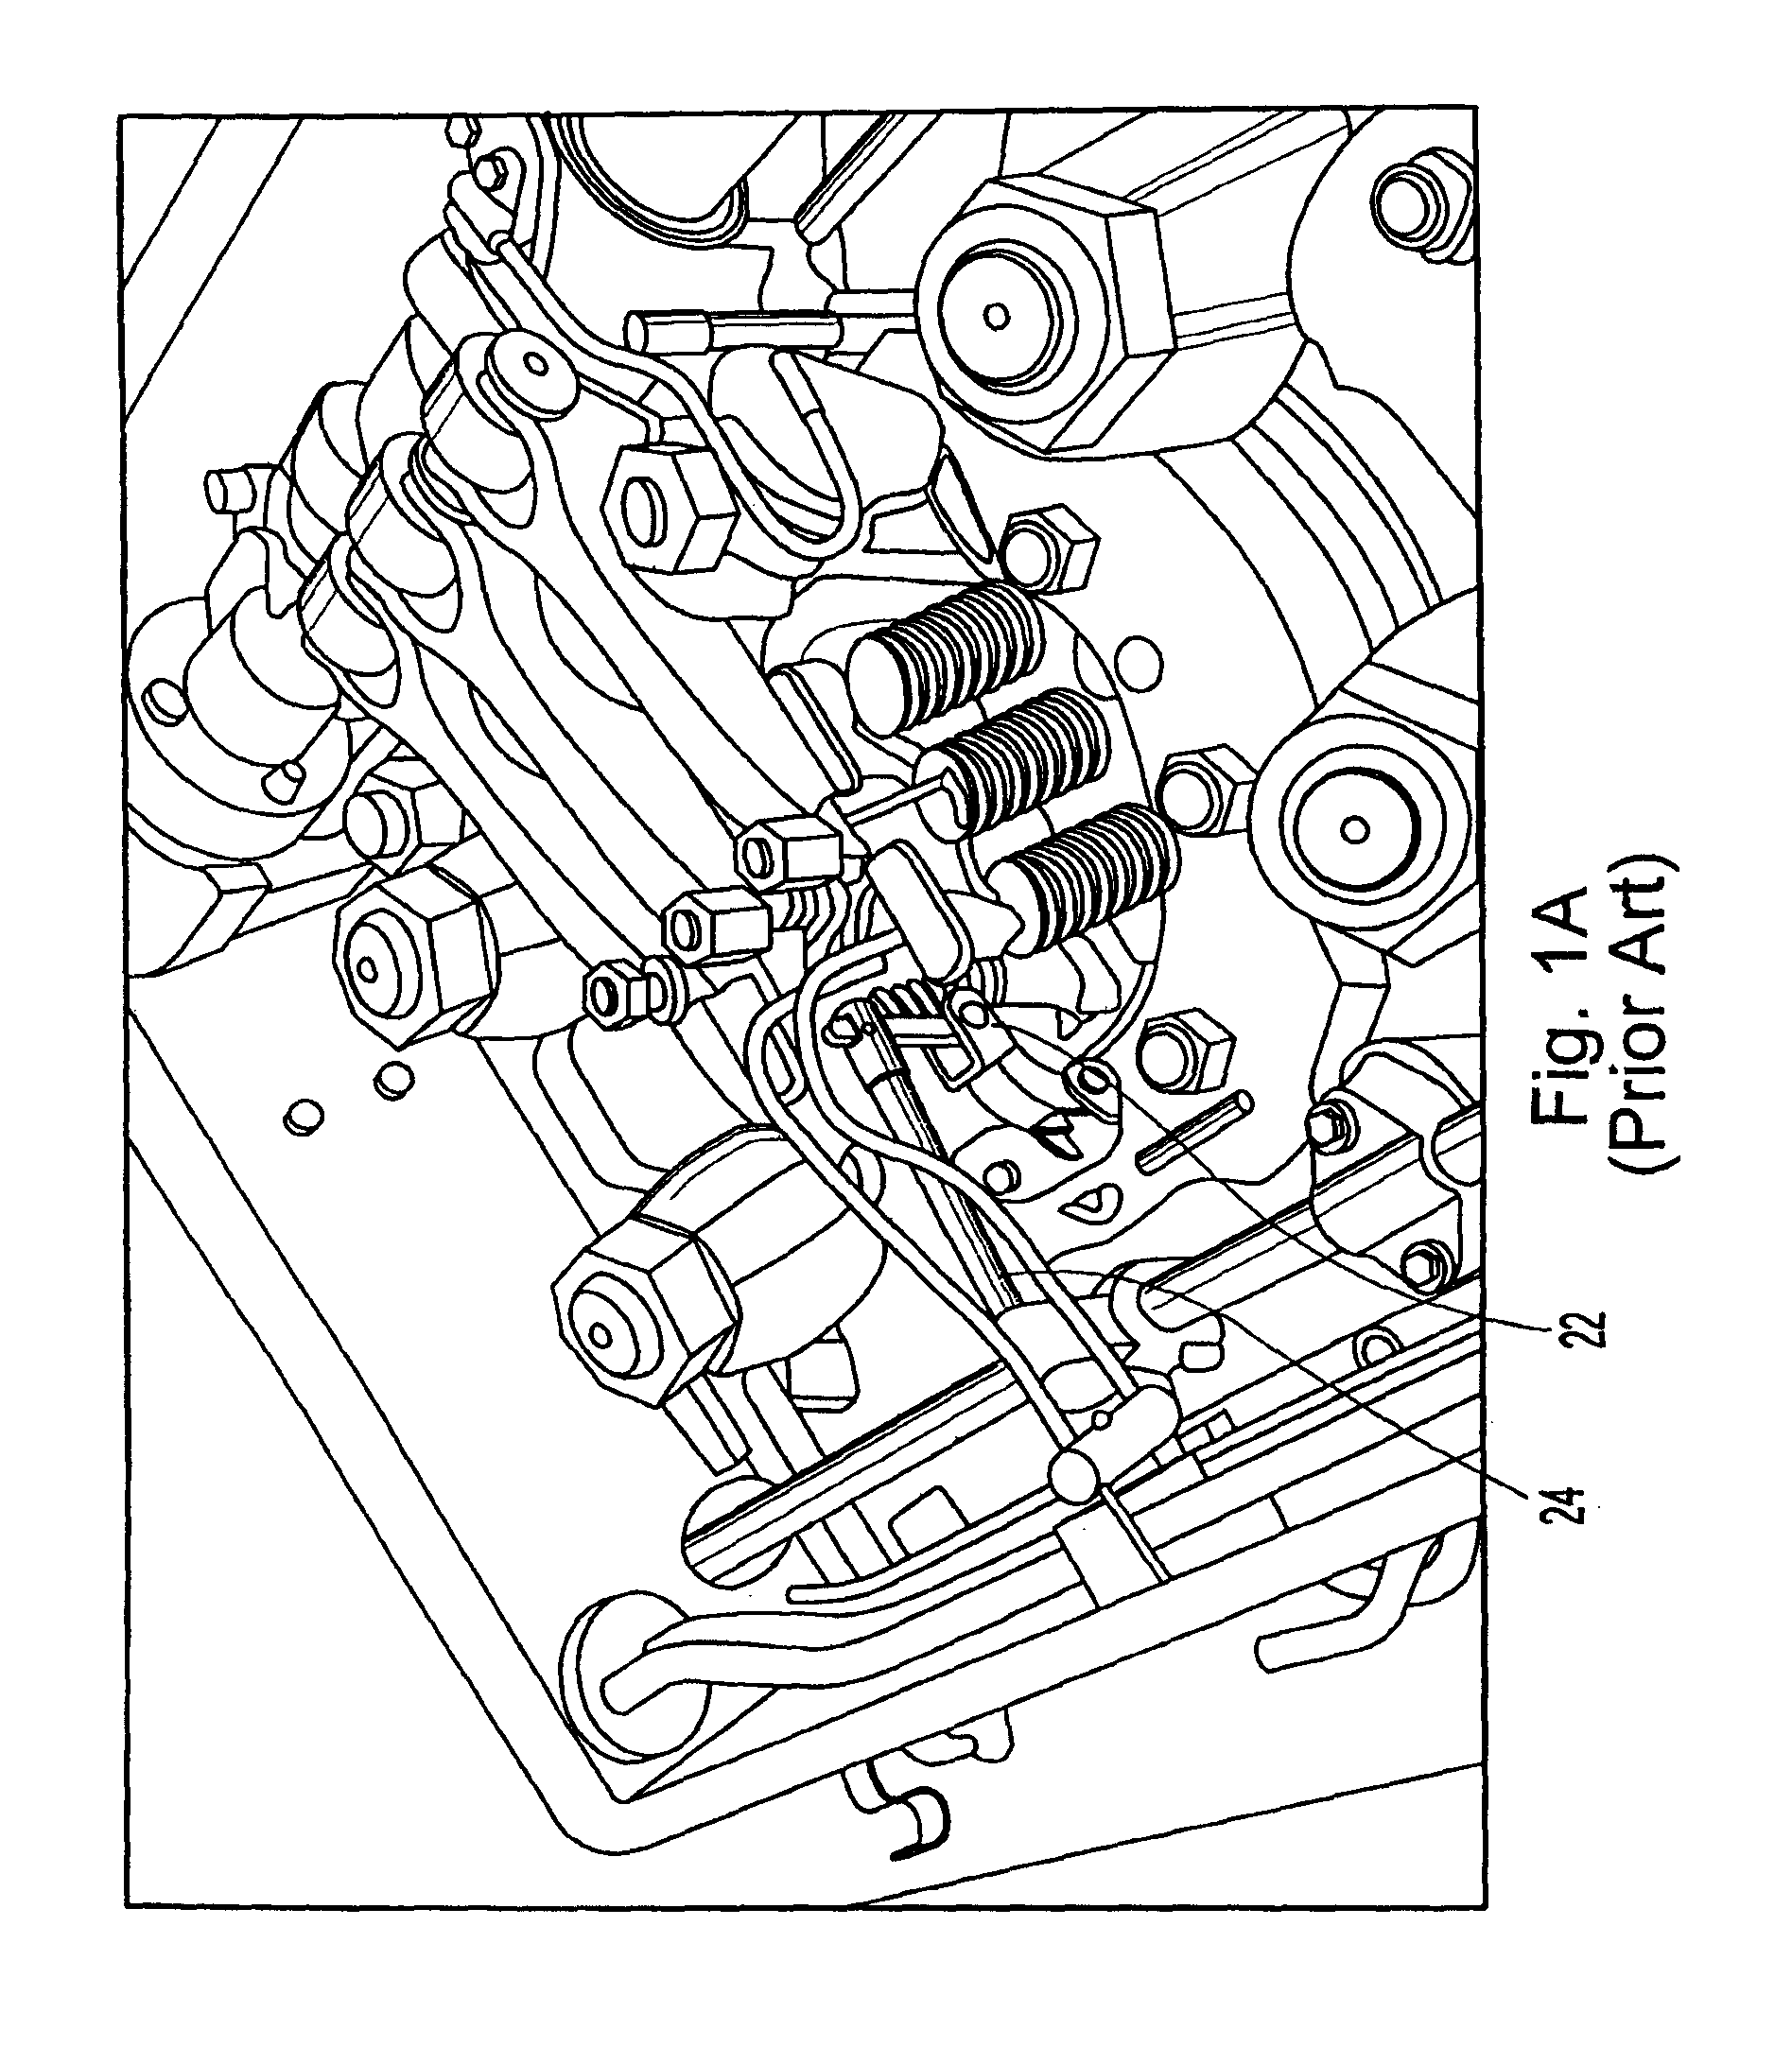 Fine Diesel Engine Diagram Labeled Pictures Inspiration - Simple ...